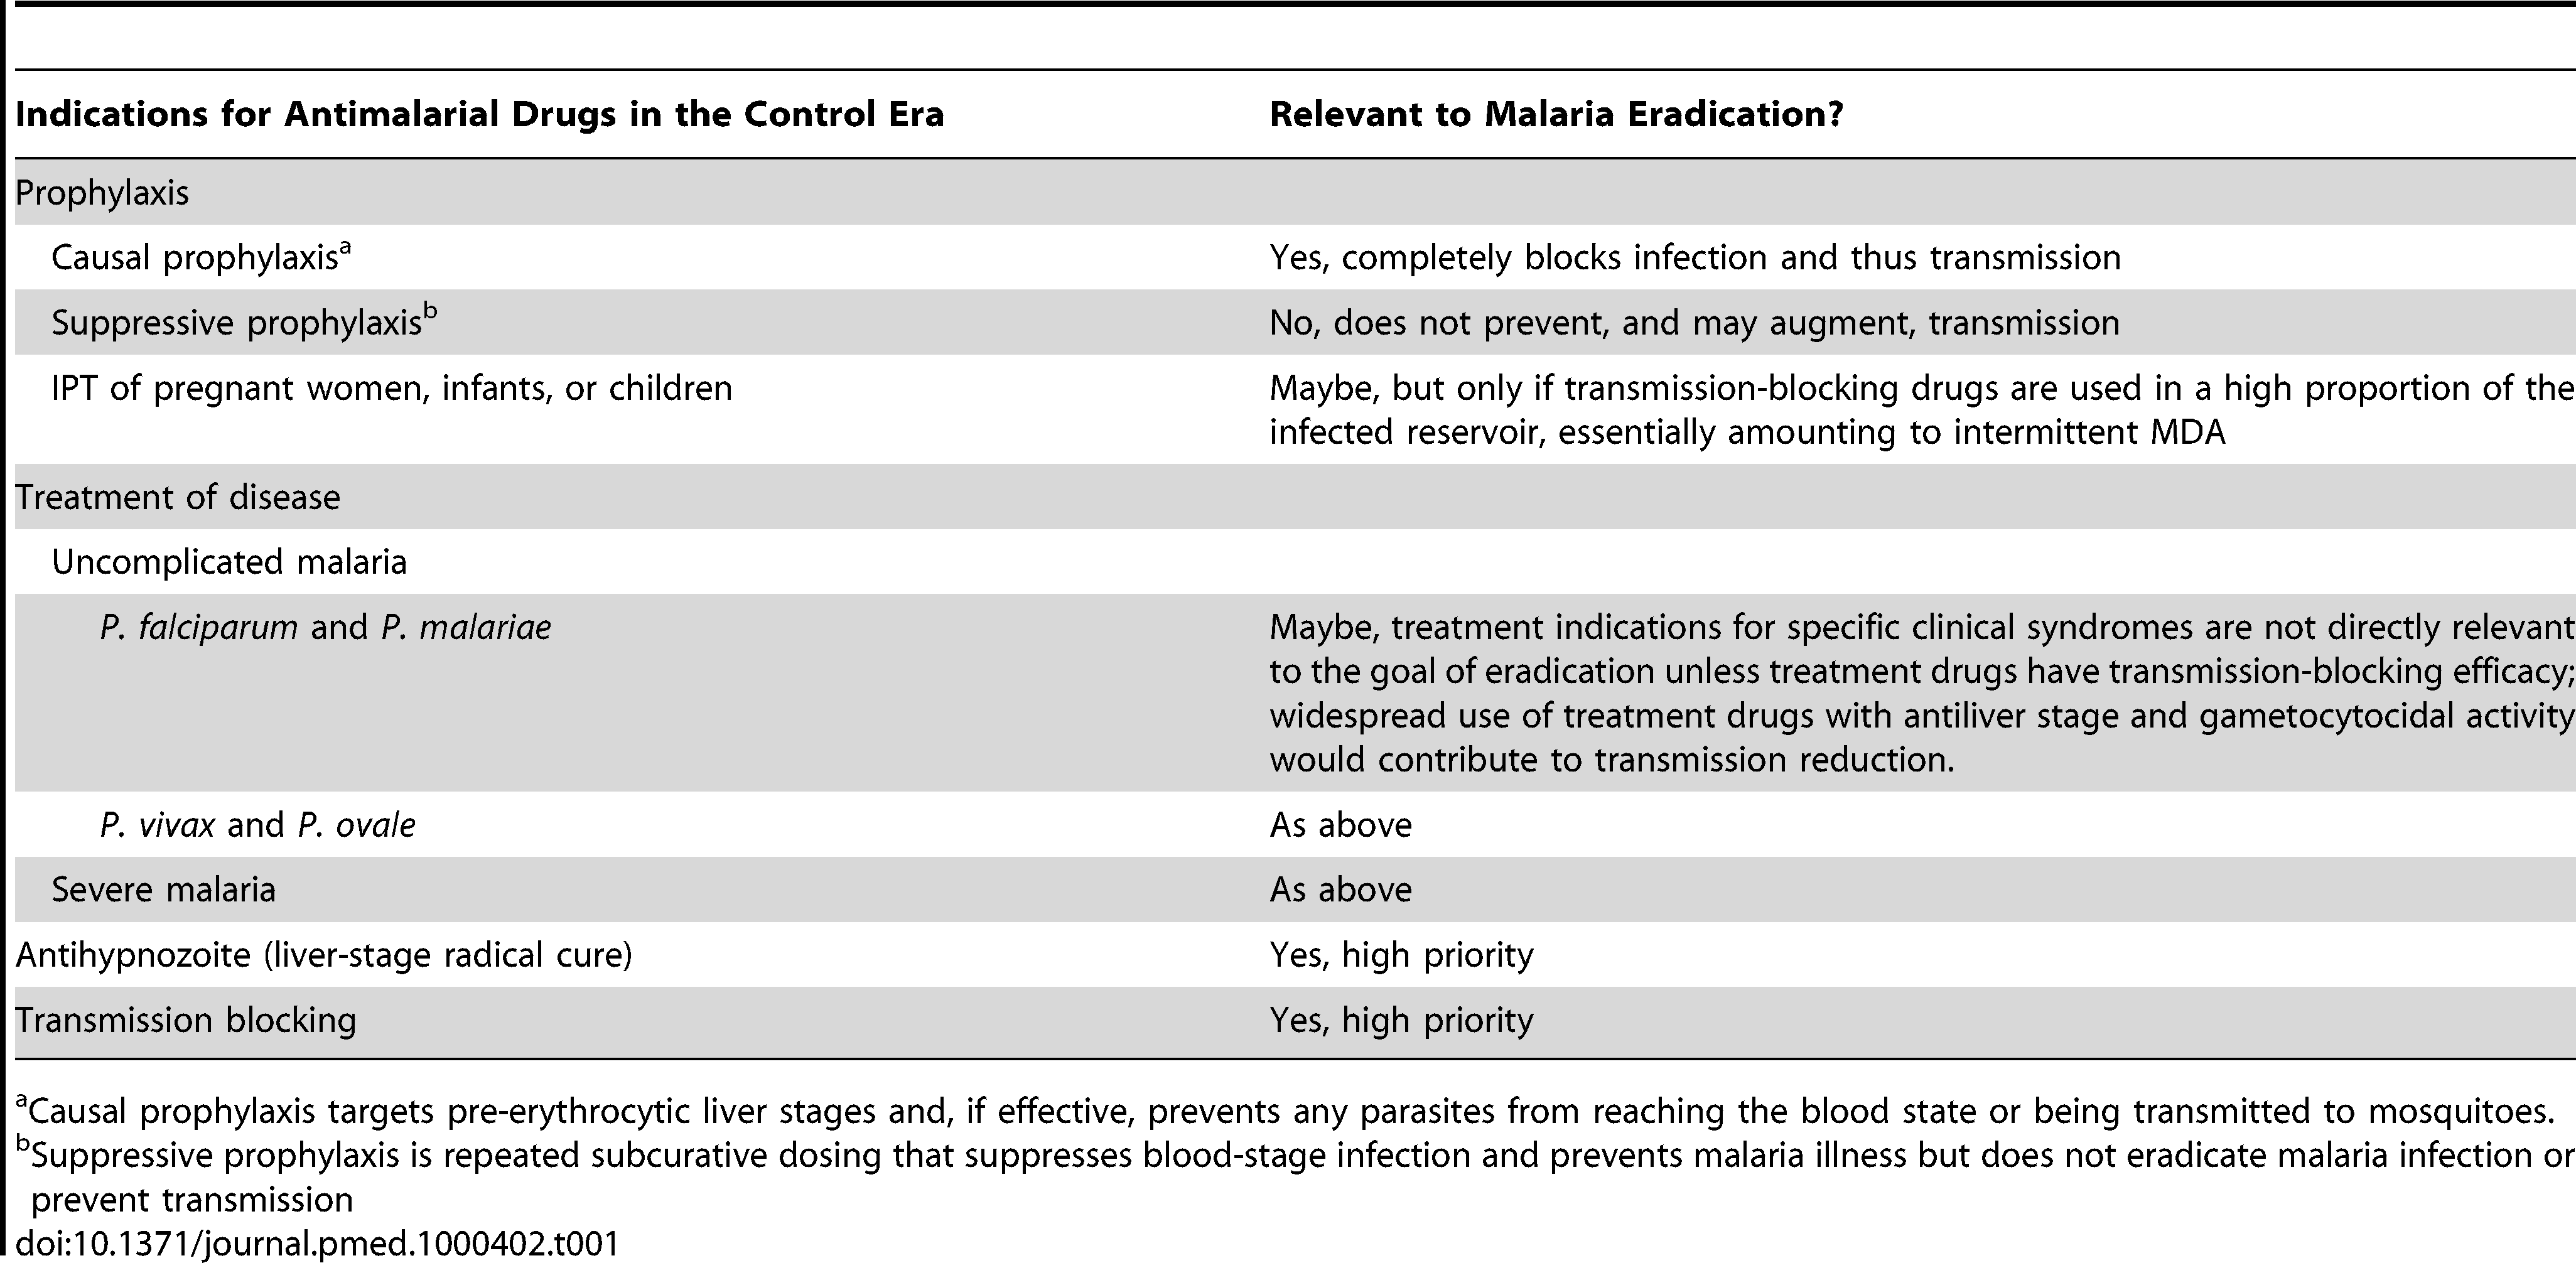 Indications for antimalarial drugs in the present control era and their relevance in the eradication era.